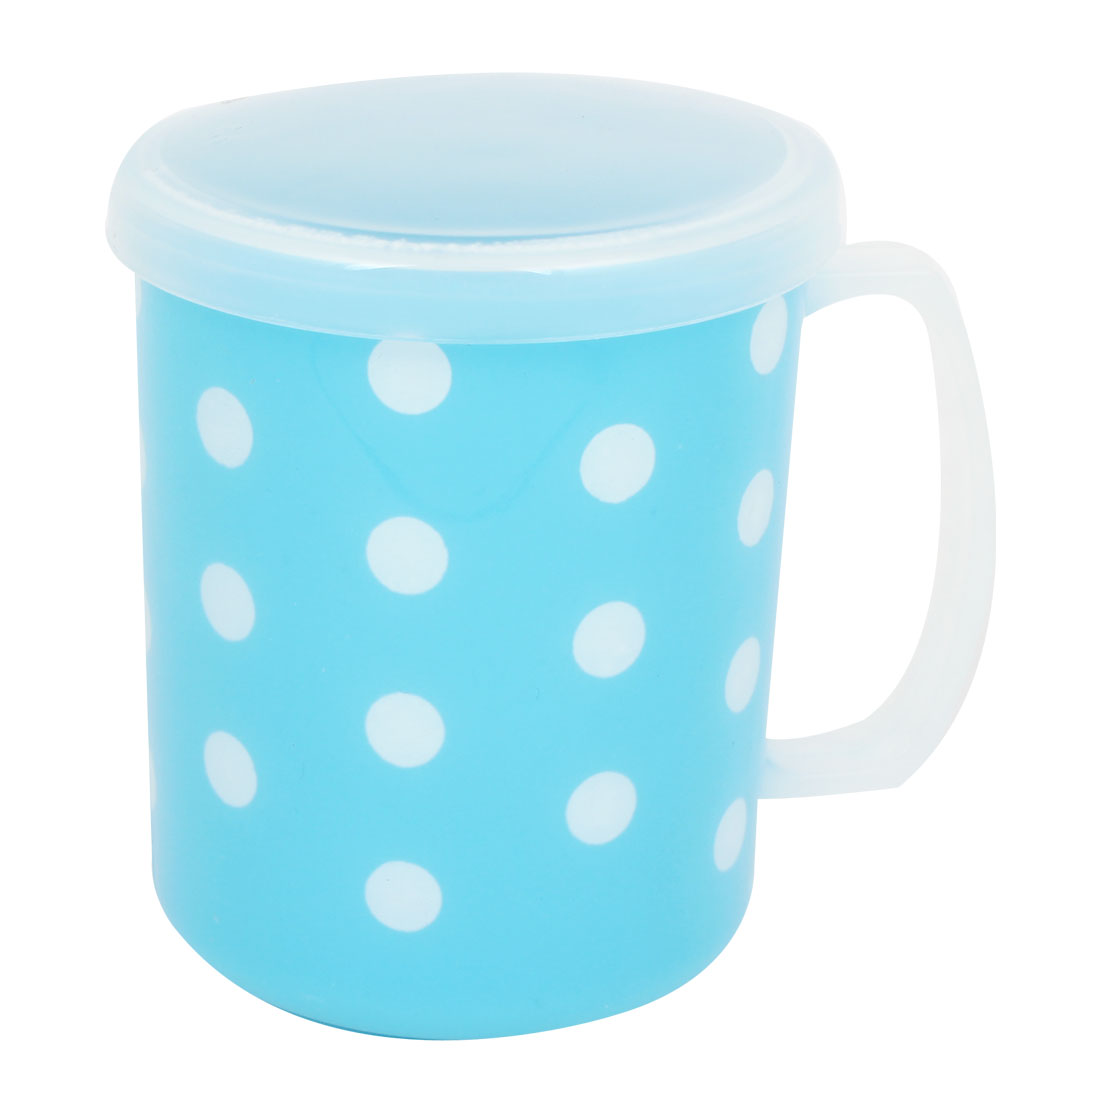 Blue Dotted Pattern Handgrip Water Bottle Gargle Toothbrush Cup w Lid